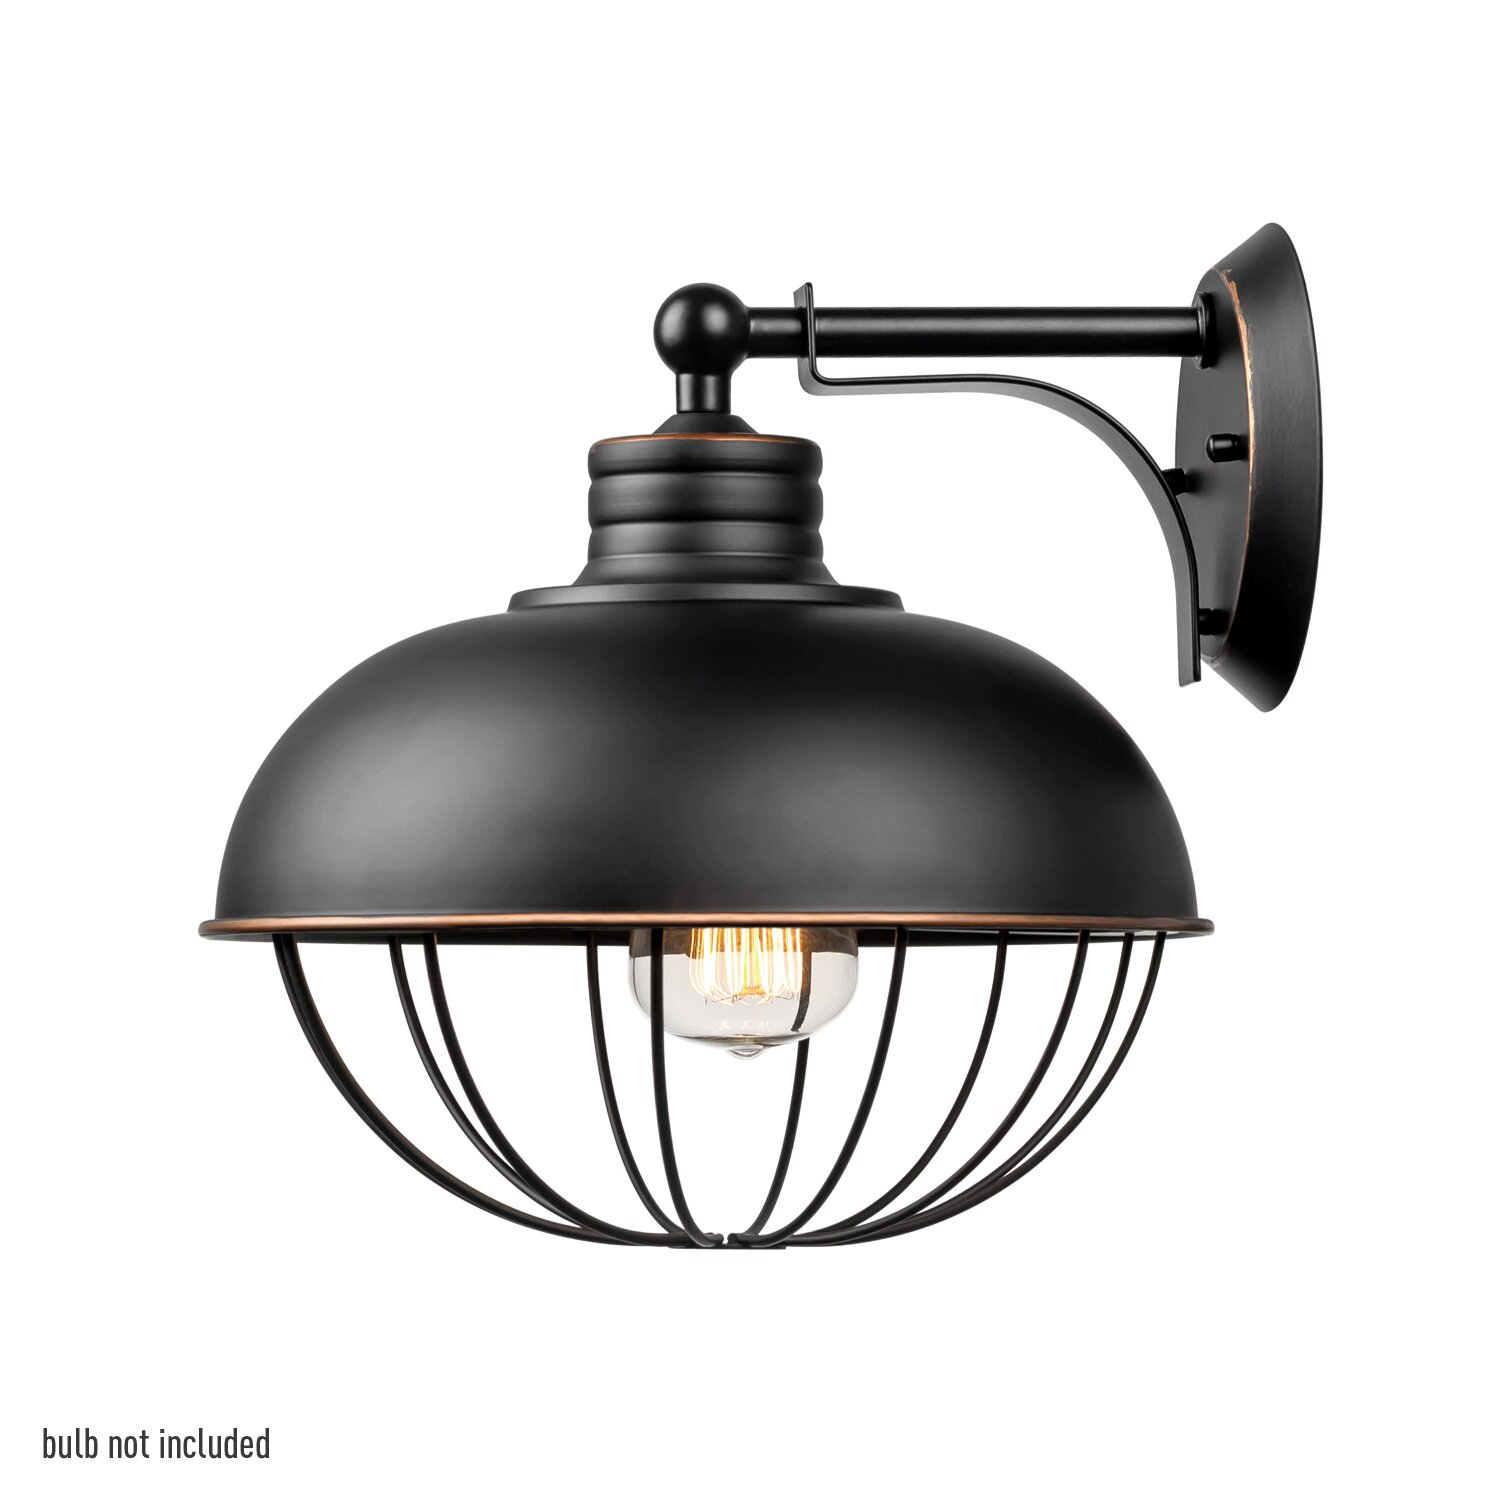 Globe Electric Company Elior 1 Light Industrial Caged Wall